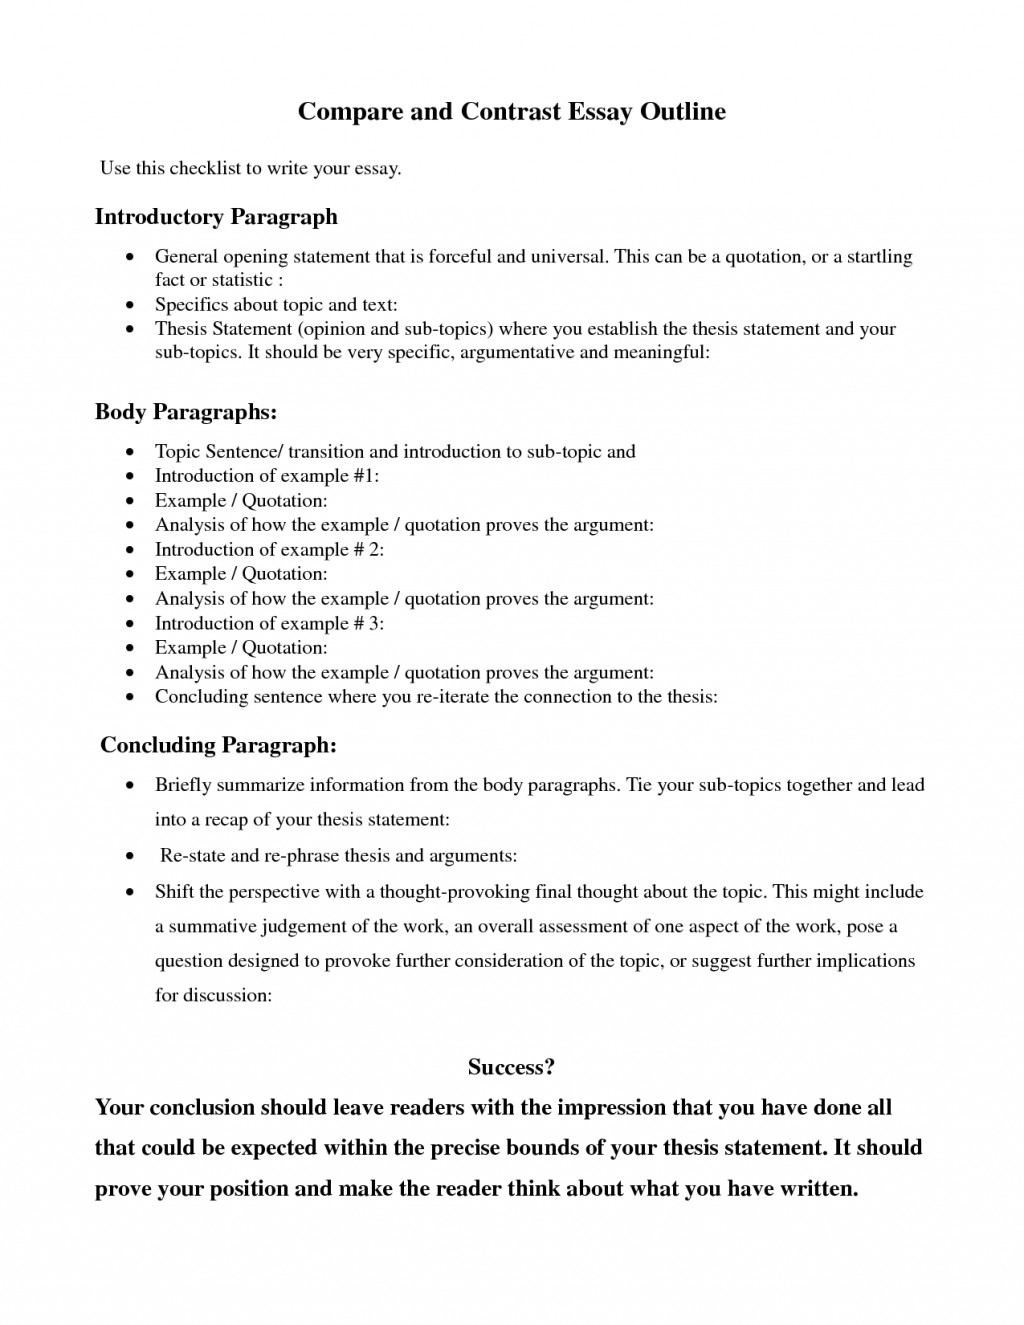 013 Essay Example Contrast Astounding Topics Comparison Middle School Compare For Elementary Students Prompts Large